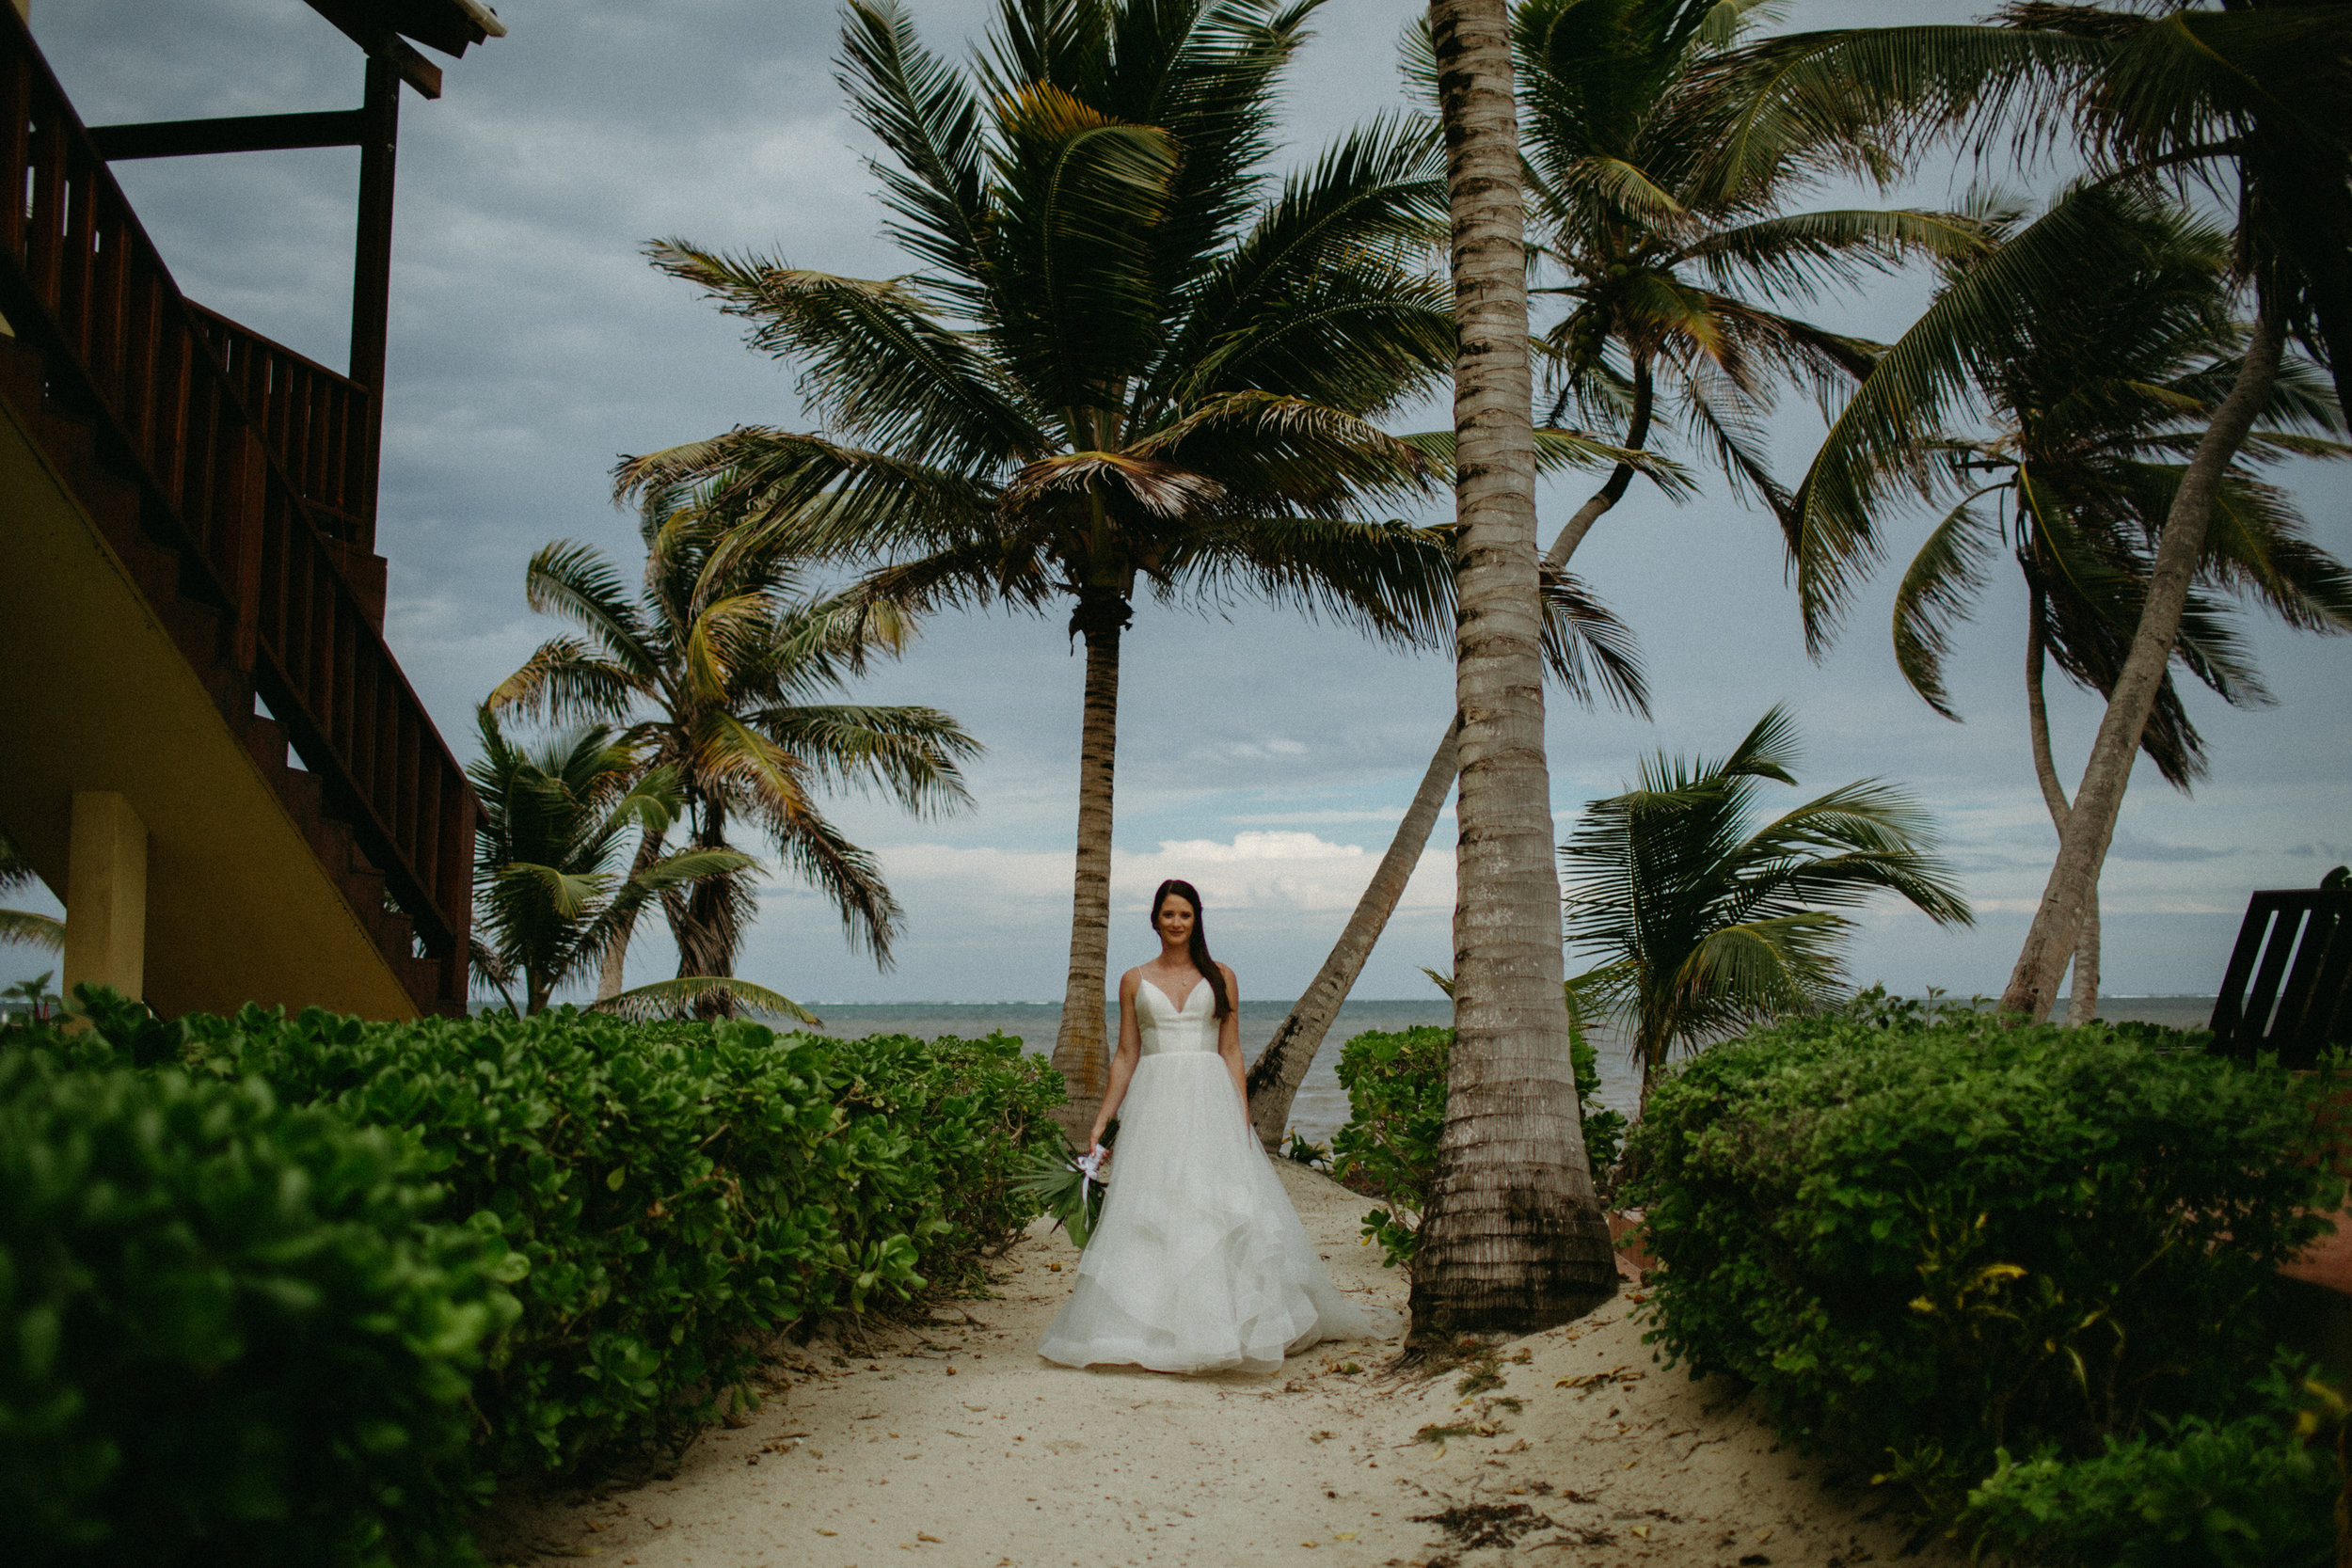 san-pescador-belize-wedding-christinemariephoto-j-k-64.jpg